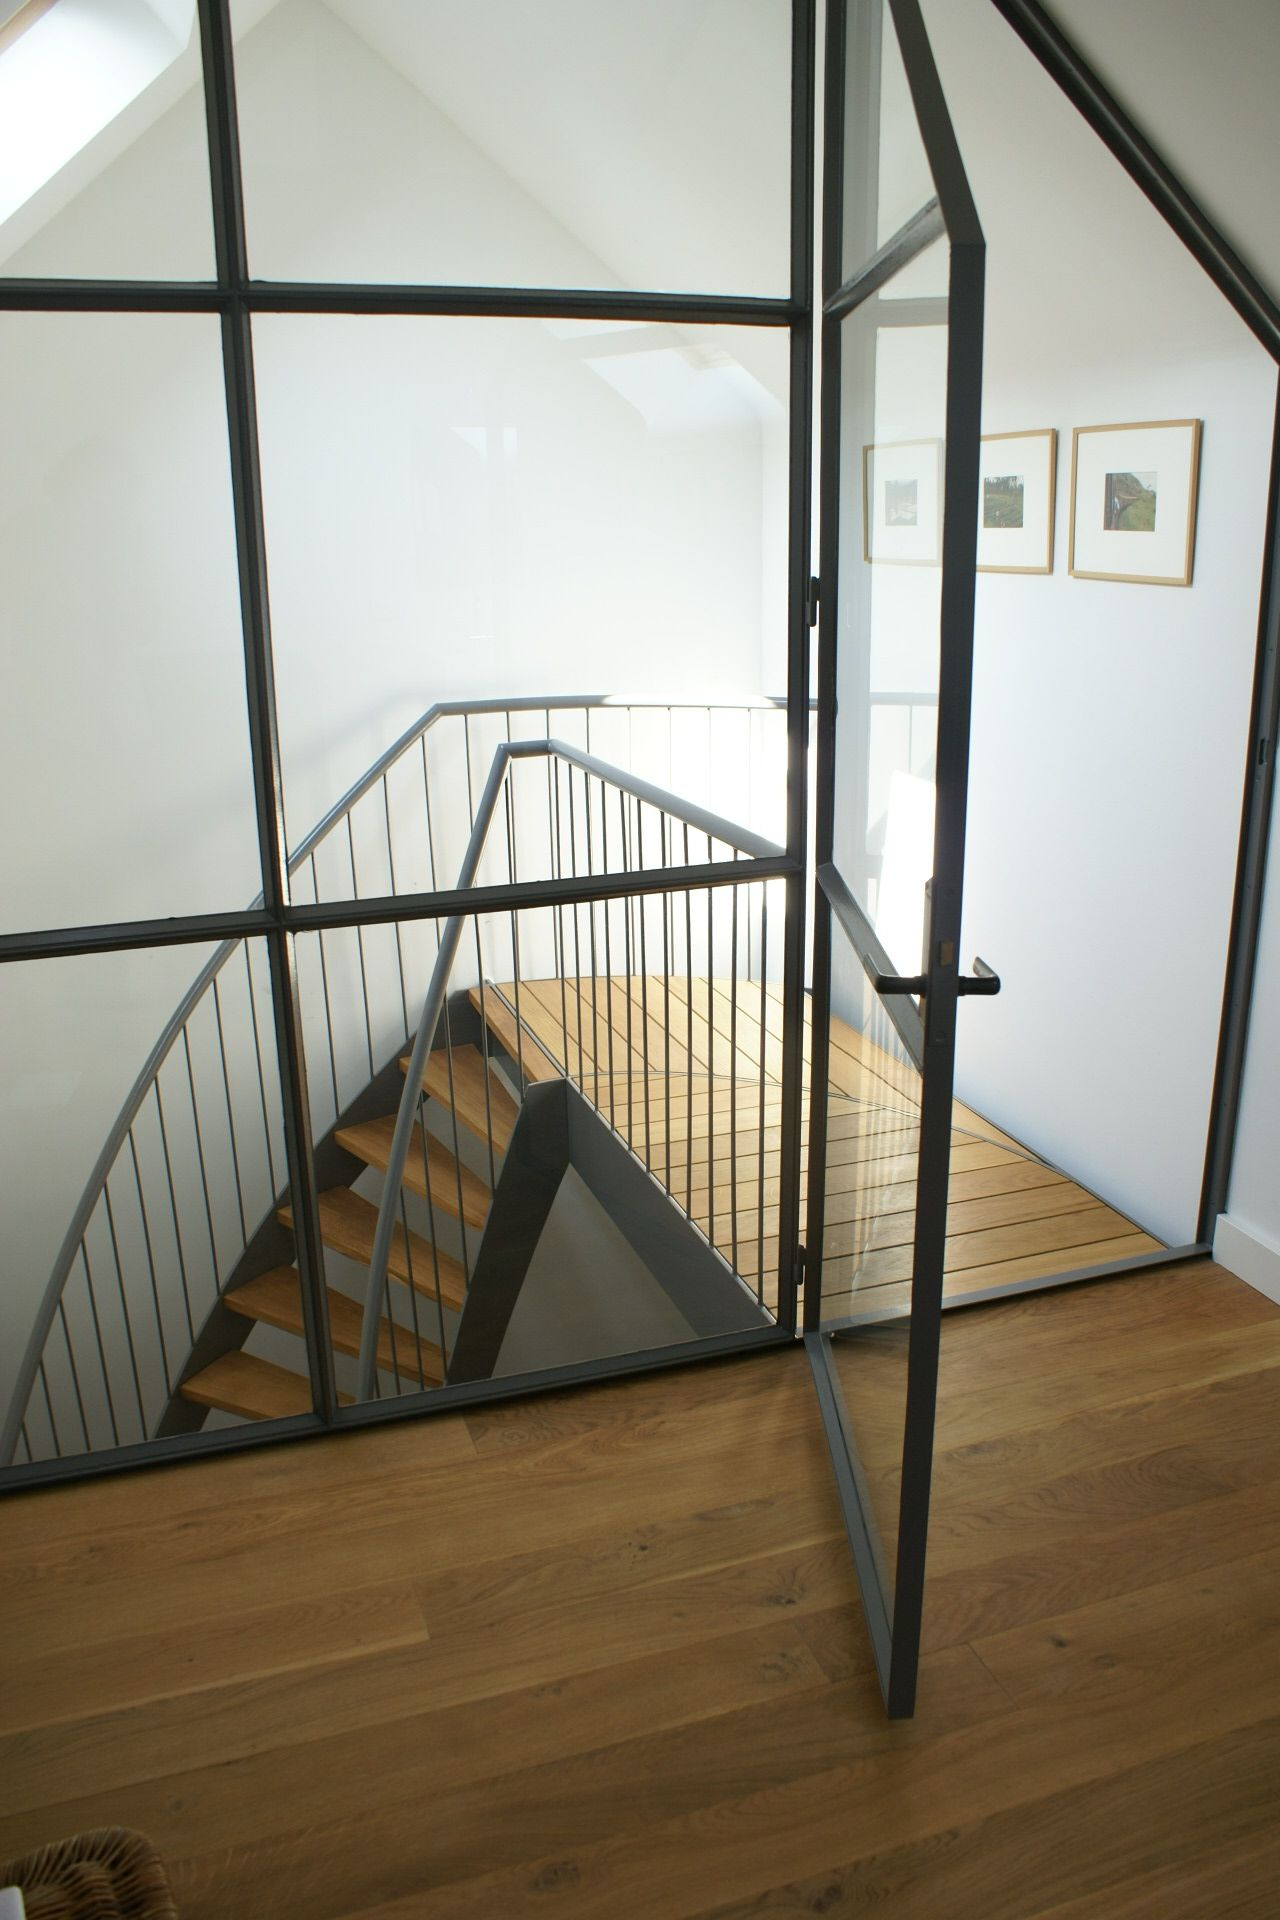 Bedroom Framed Wall, Wooden Floor, White Stucco, Steel Stairway Slaapkamer